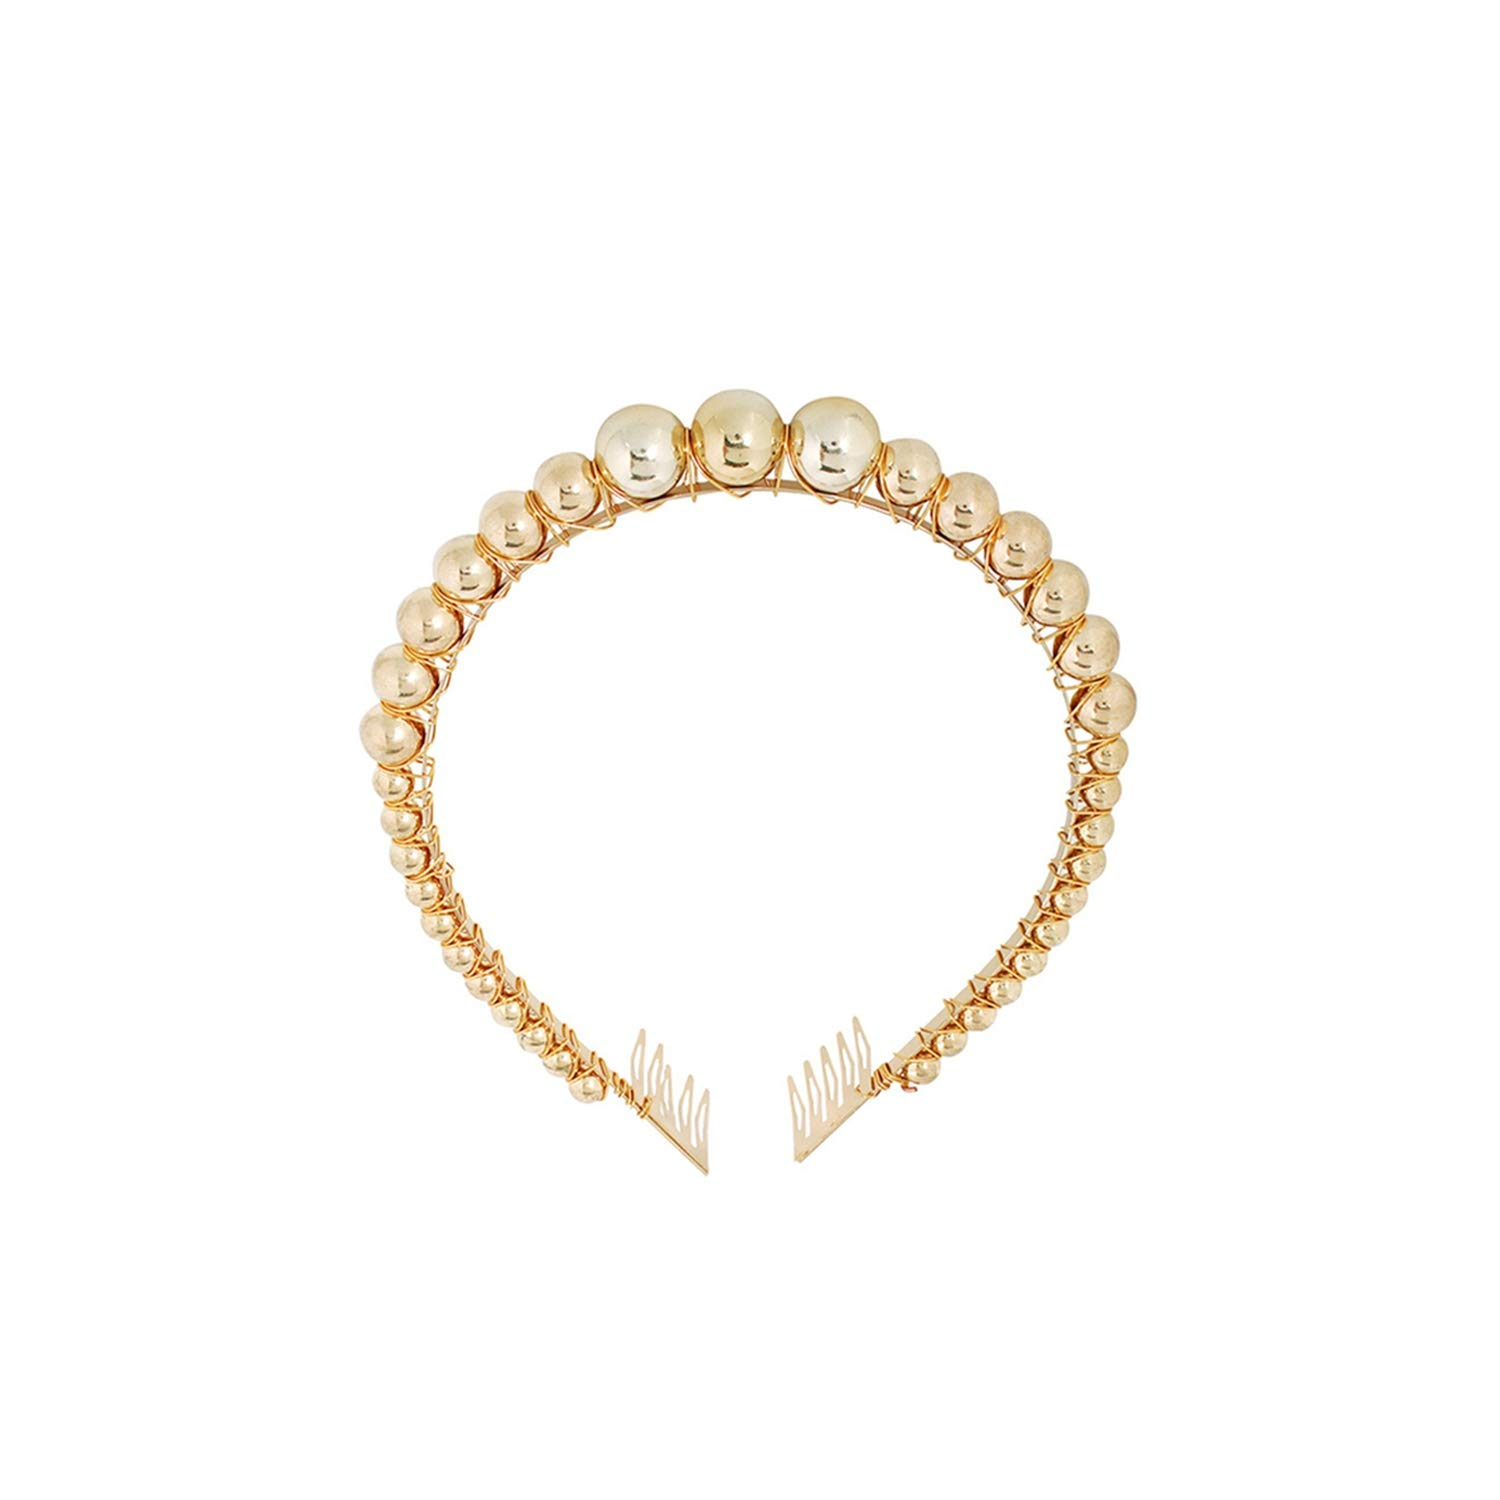 New Big Pearl Headband For Women Wild Personality Trend Hairband Party Pearl Girls Hair Accessories,91-B